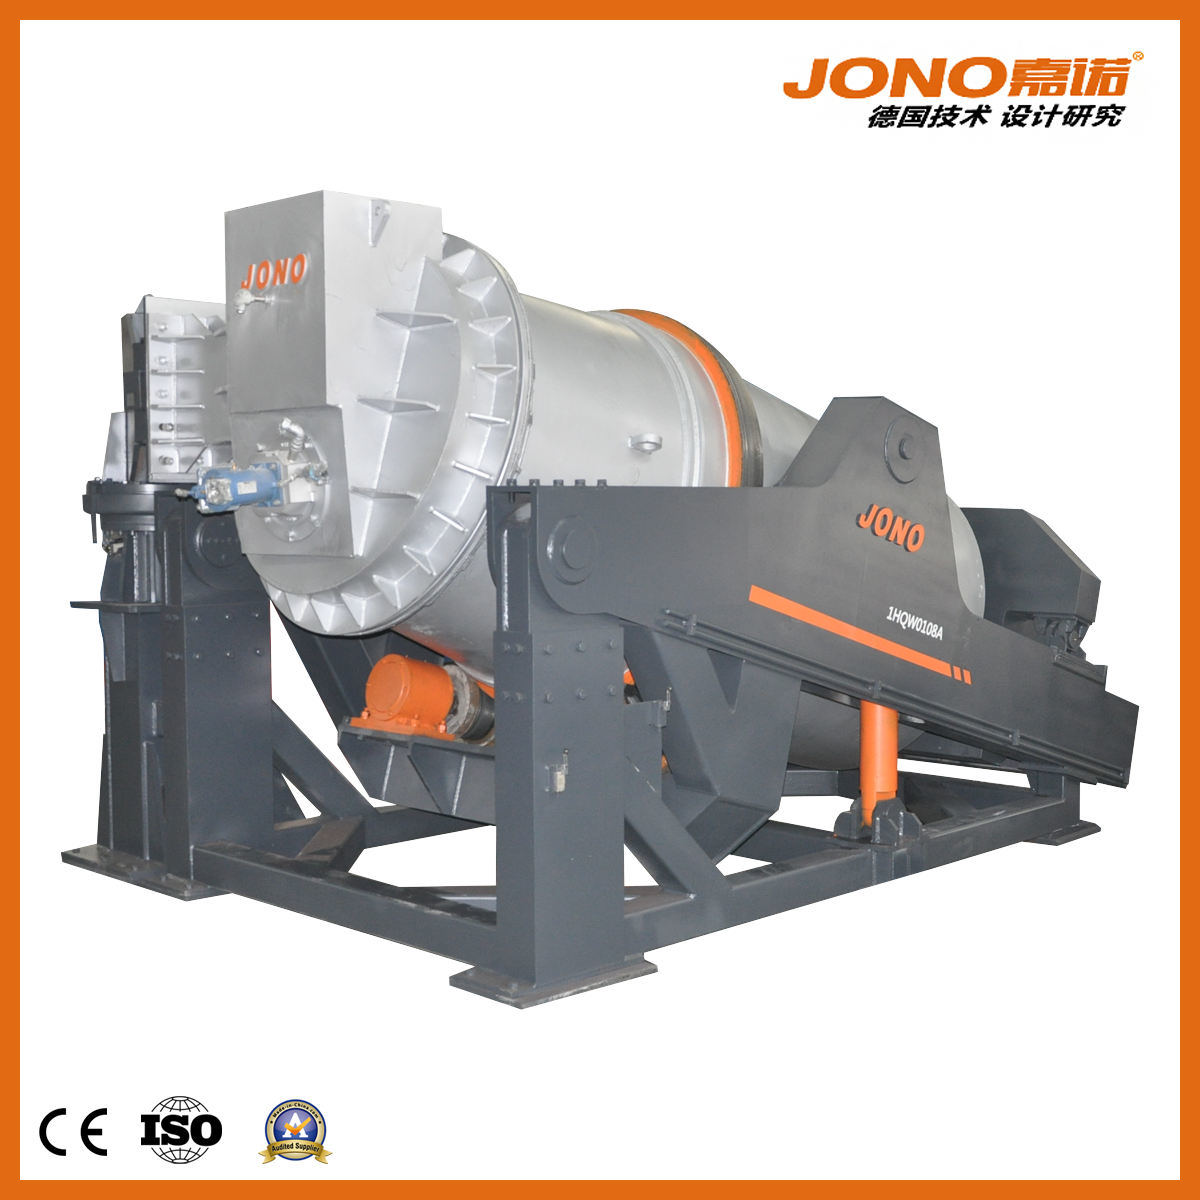 1HQW1012A Universal Tilting Rotary Furnace